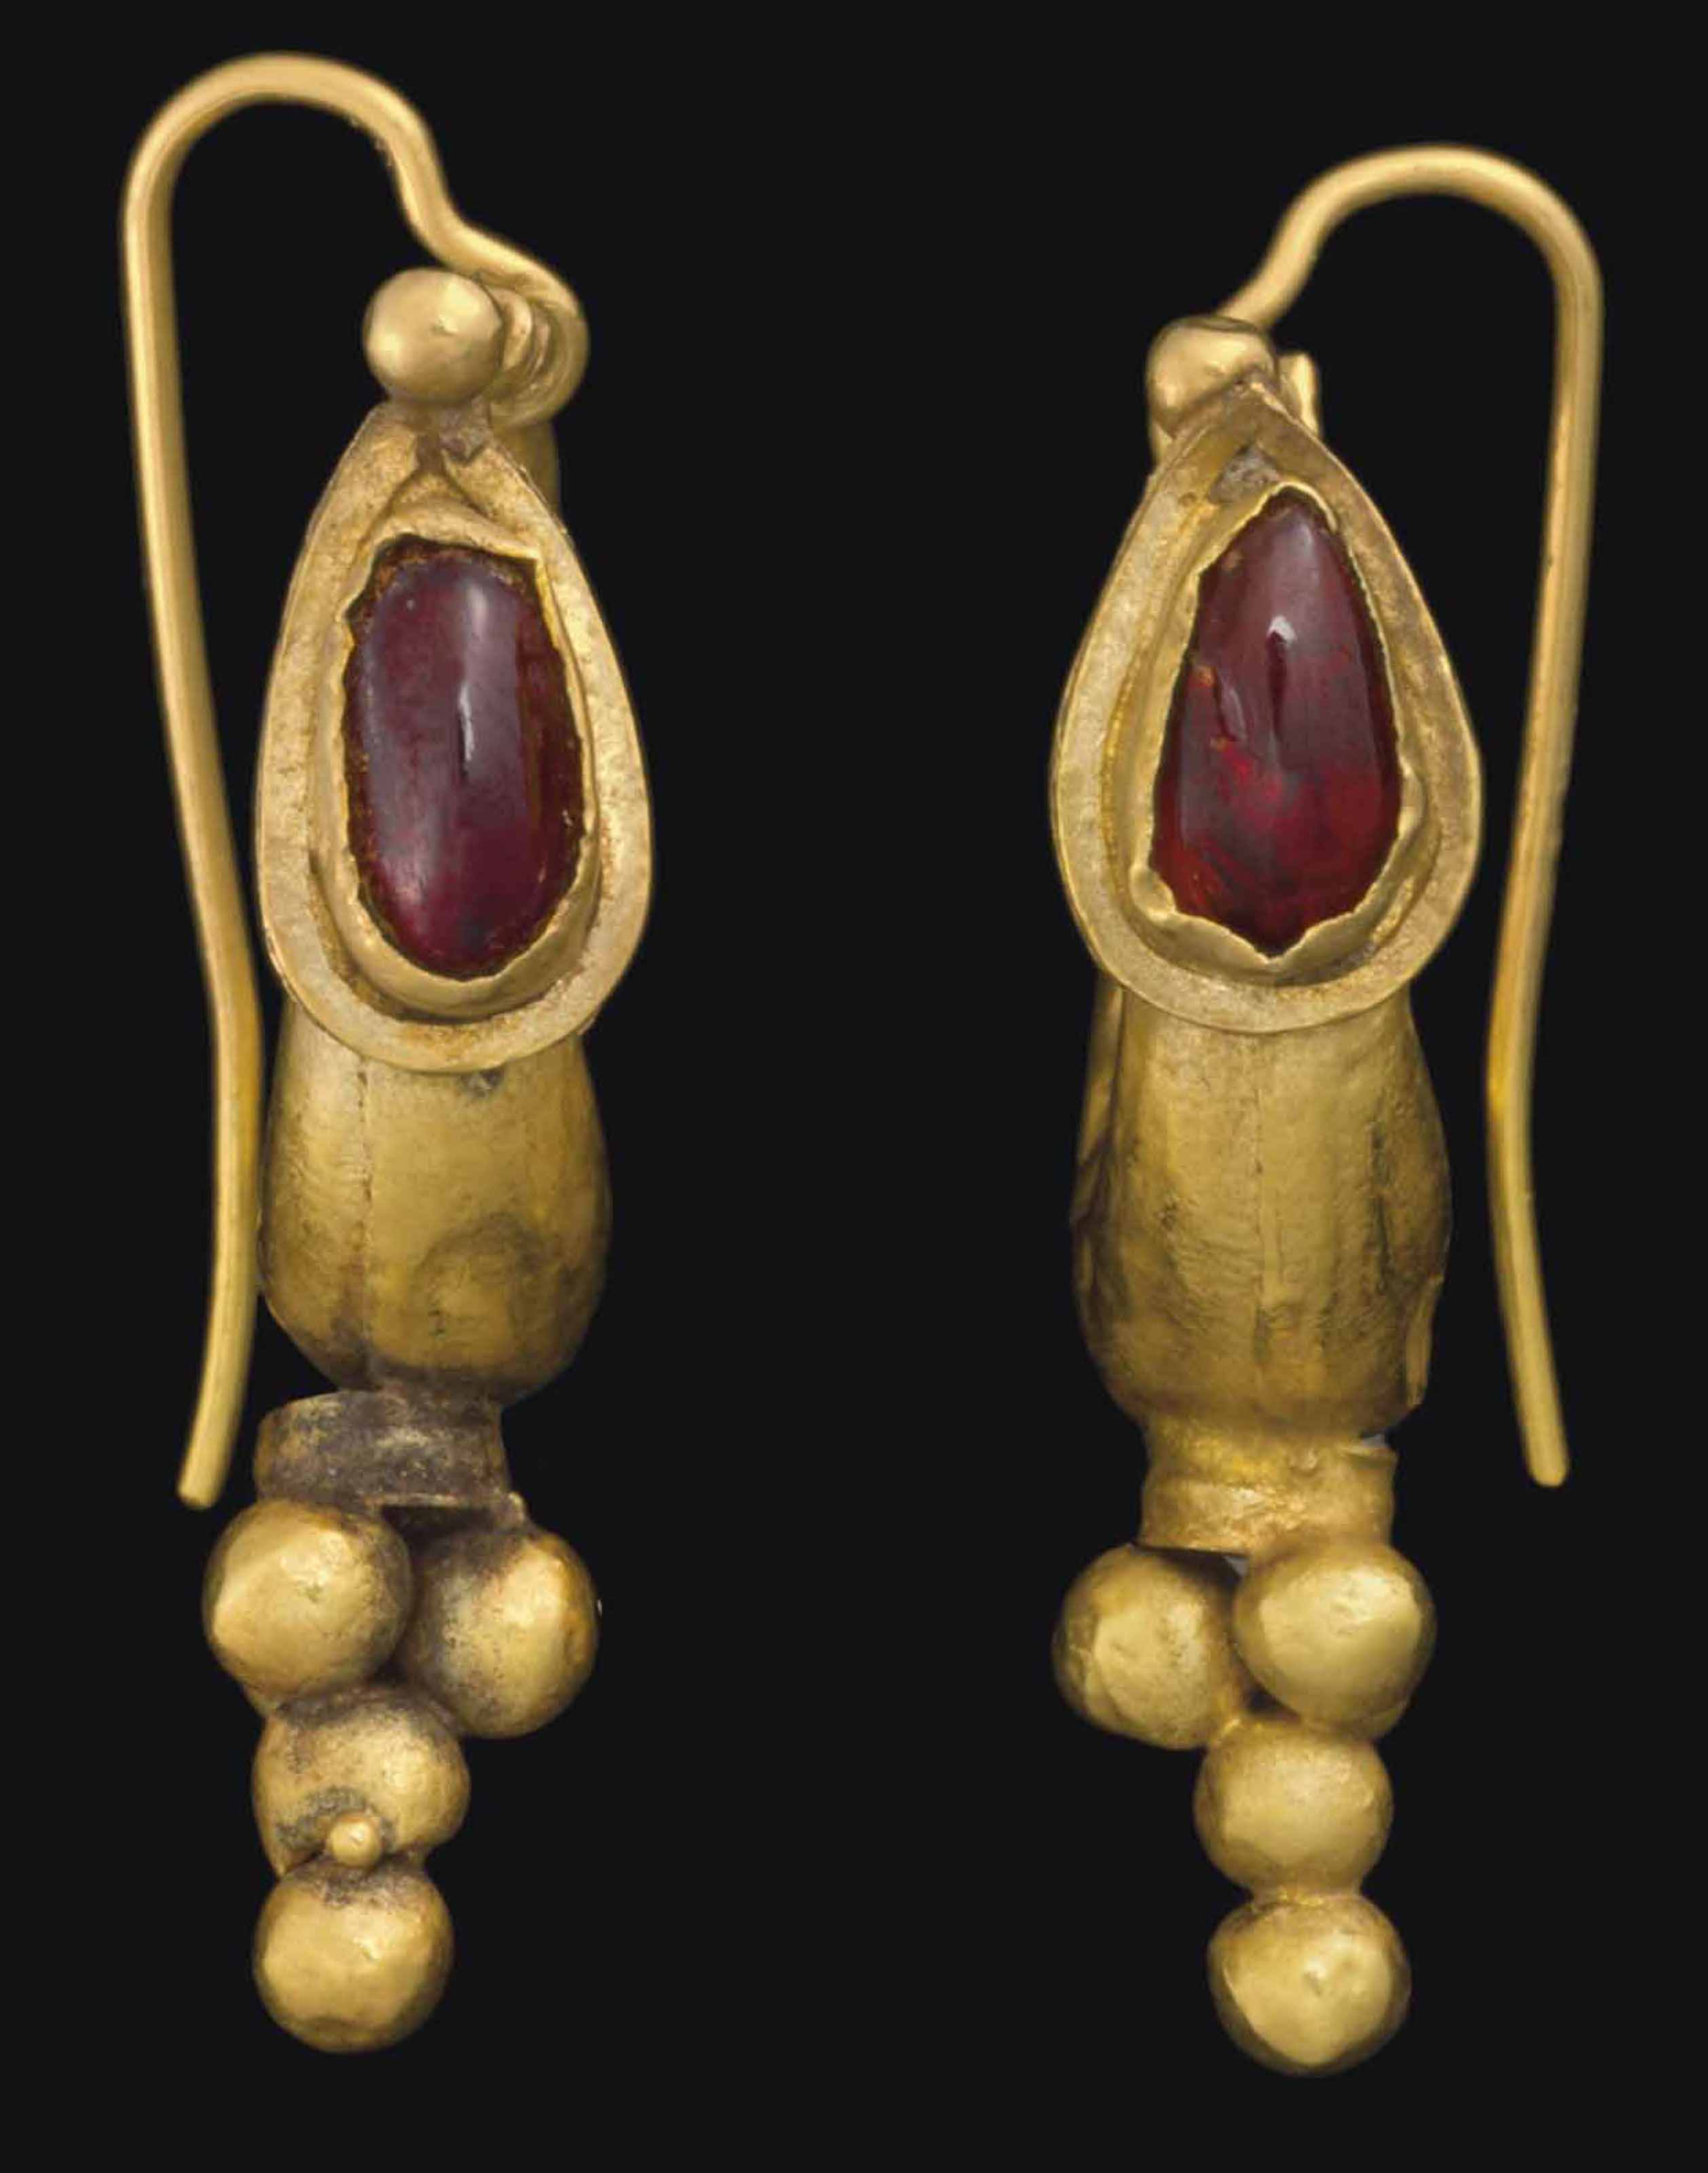 A PAIR OF ROMAN GOLD AND GARNE